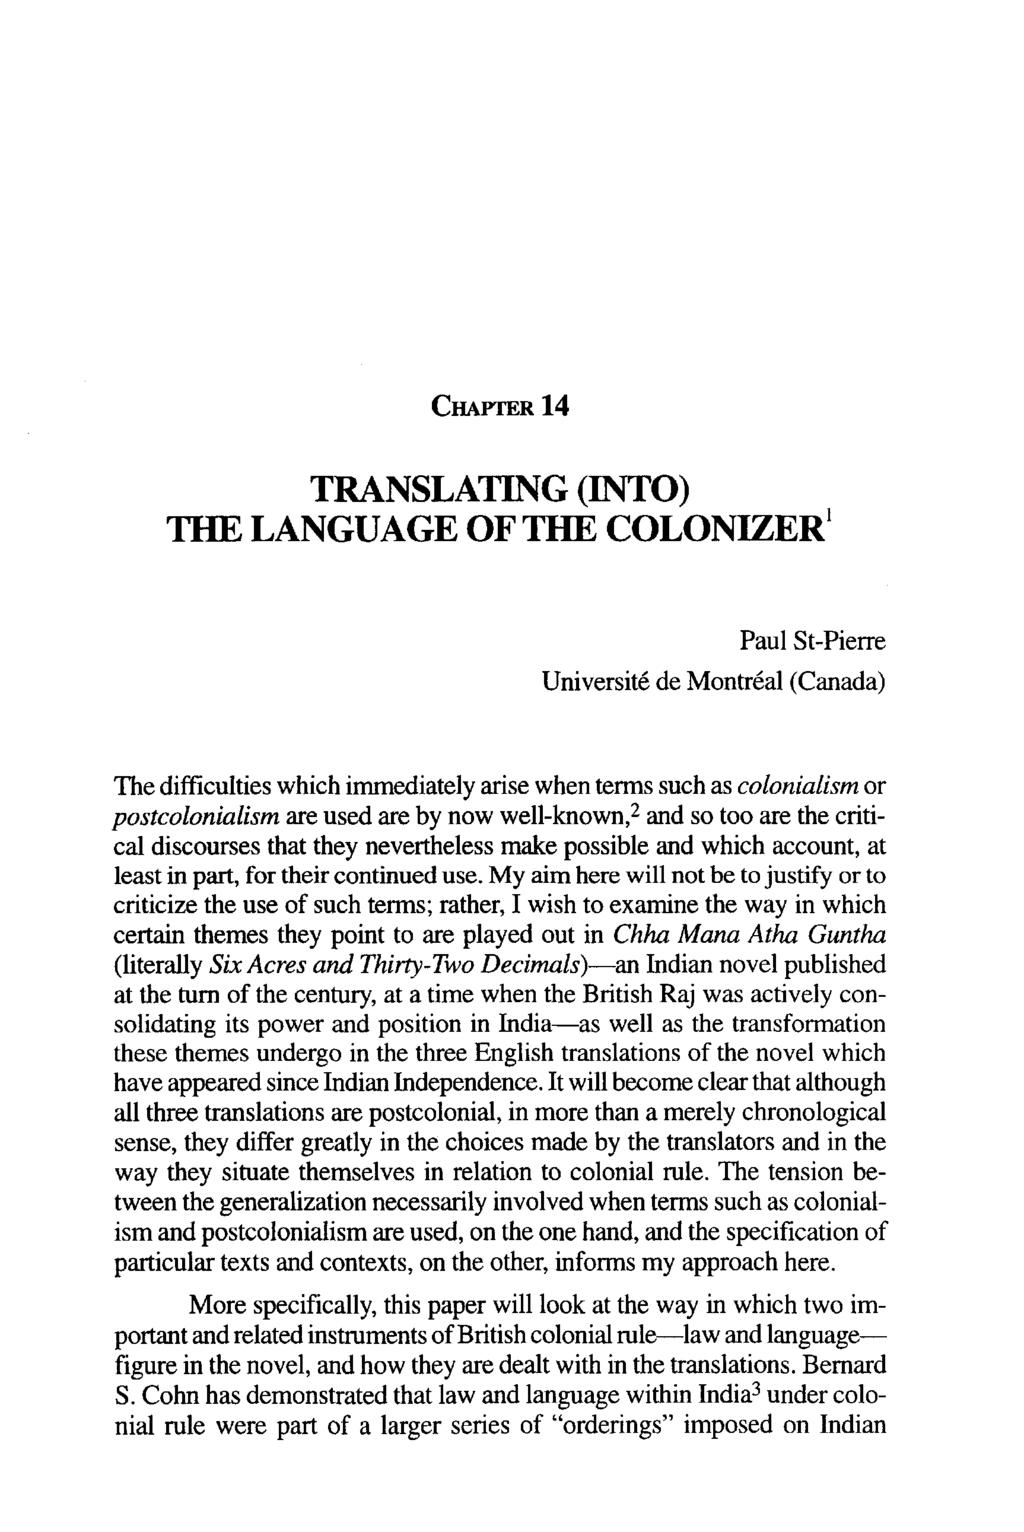 CHAPTER 14 TRANSLATING (INTO) THE LANGUAGE OF THE COLONIZER 1 Paul St-Pierre Universite de Montreal (Canada) The difficulties which immediately arise when terms such as colonialism or postcolonialism